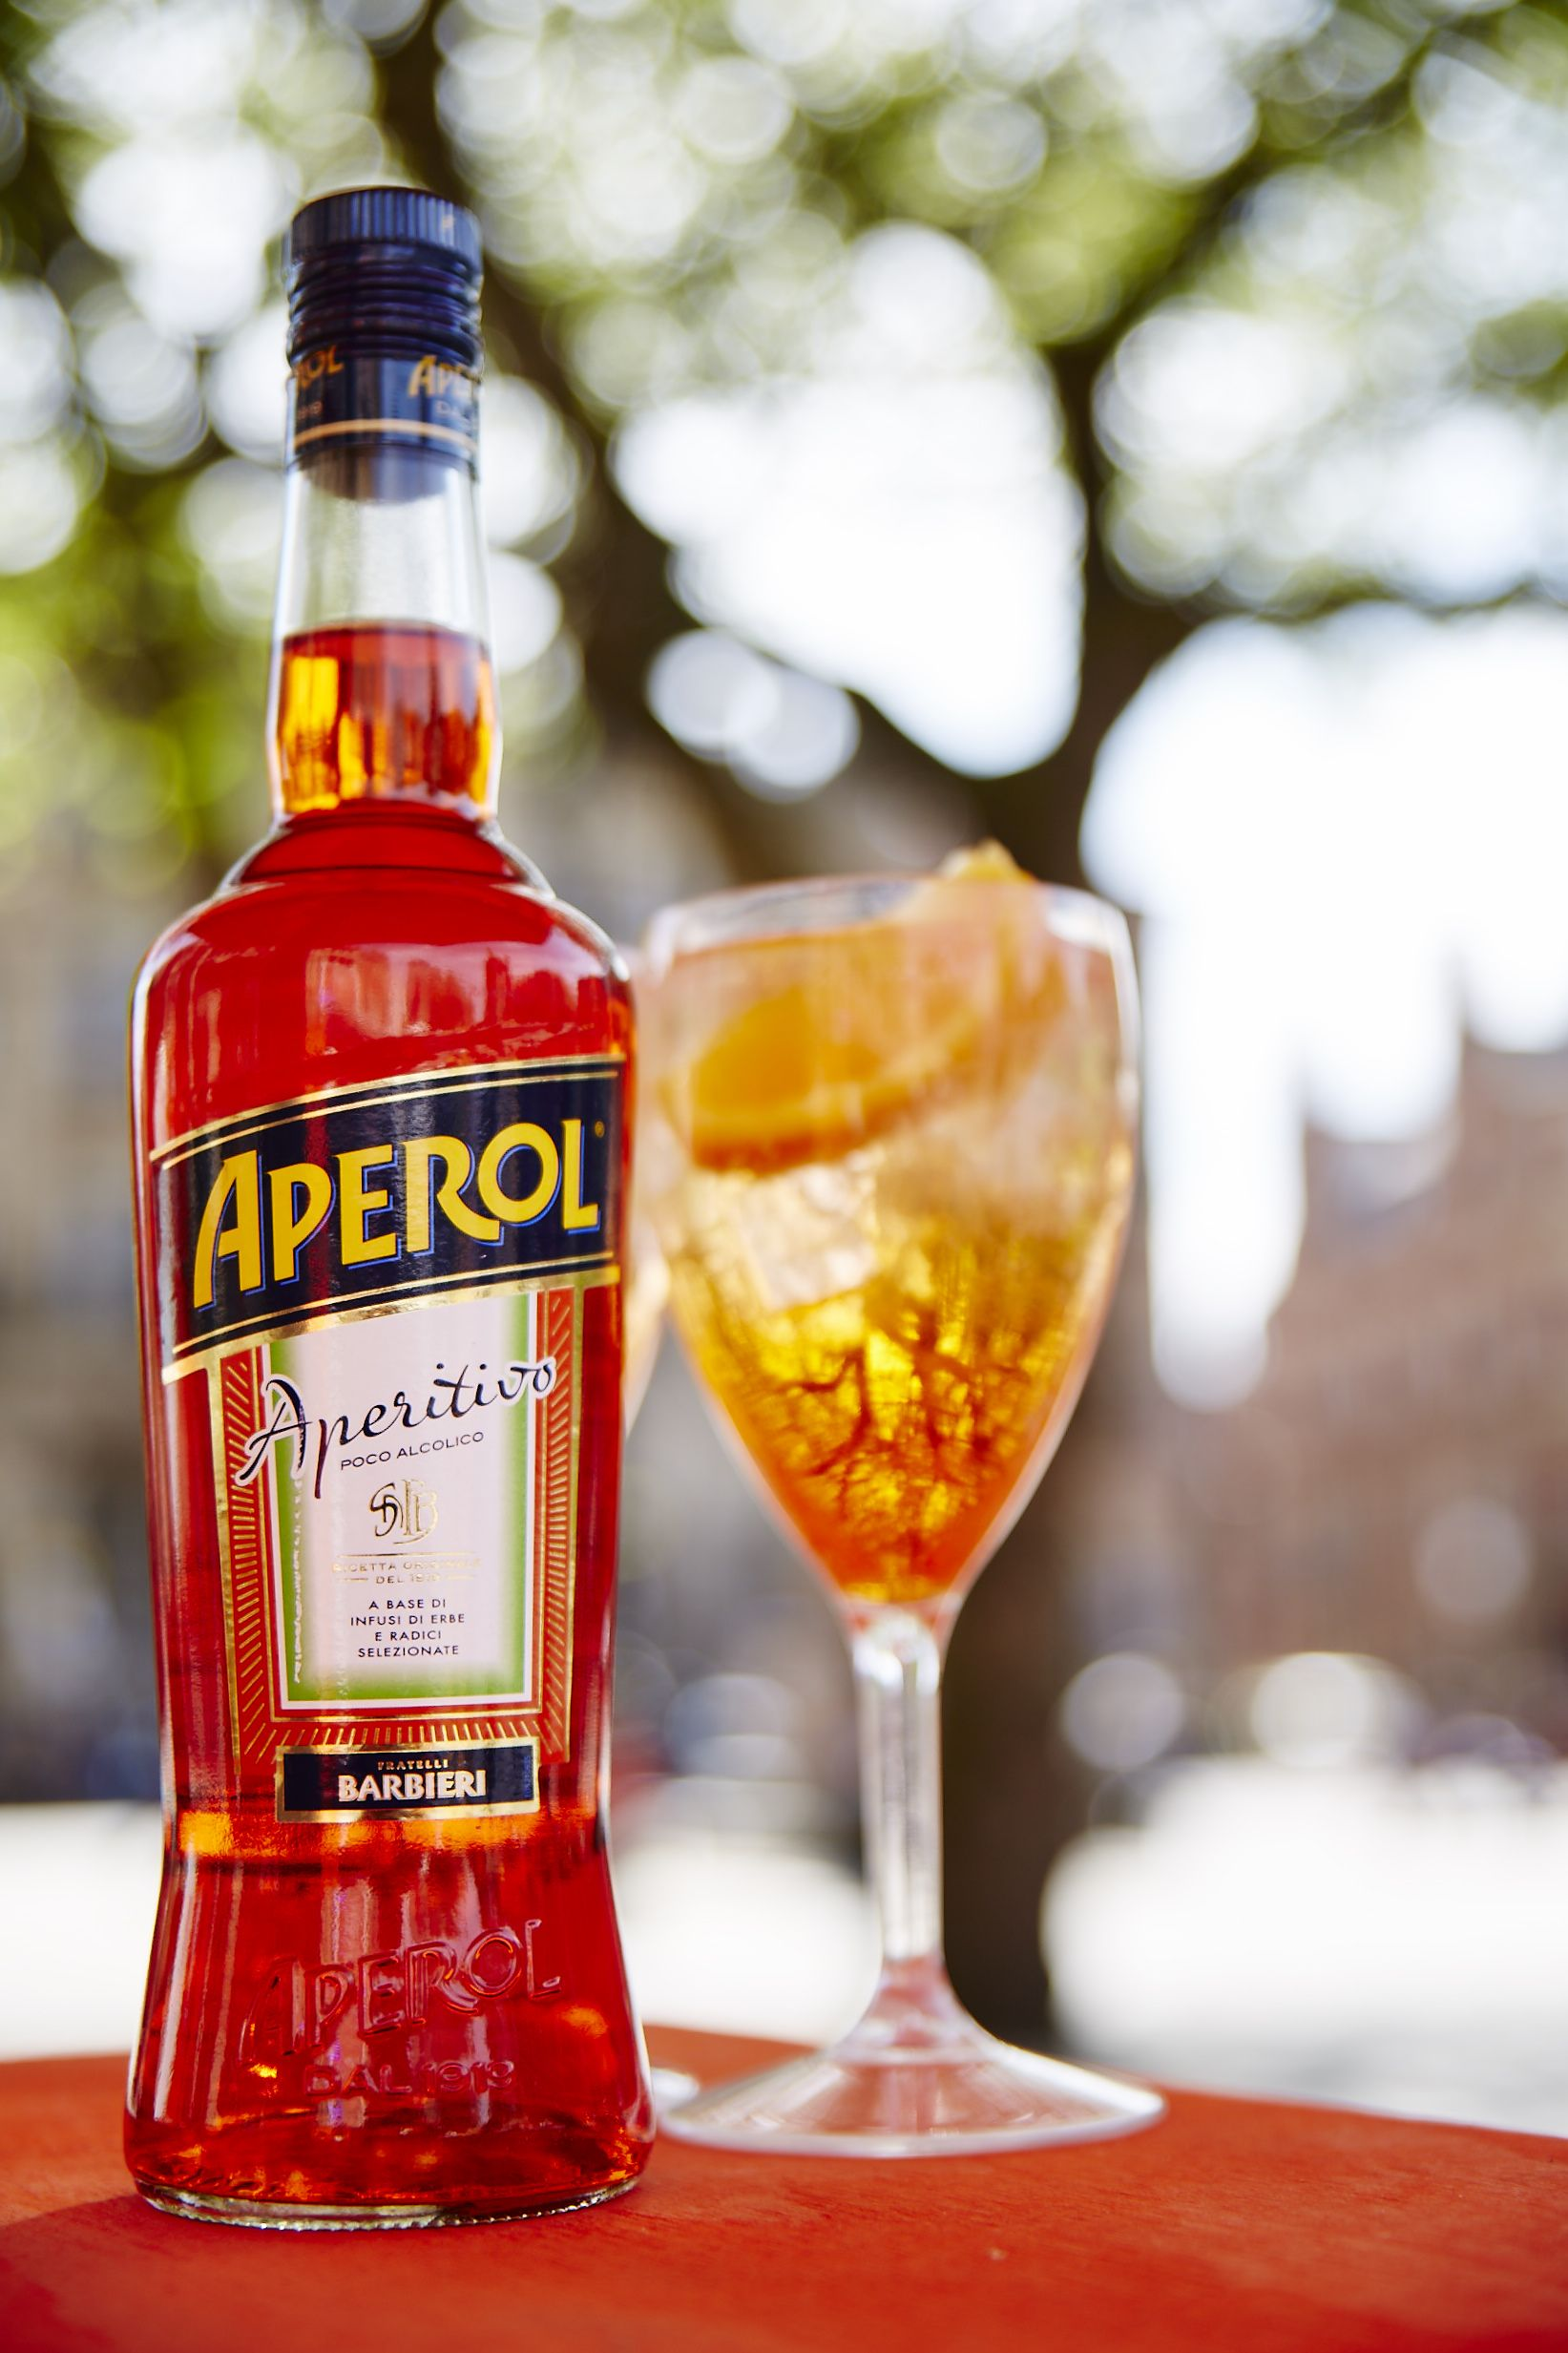 The Perfect Aperol Spritz Recipe Three Parts Prosecco Two Parts Aperol And One Part Soda Water All Poured Over Ice And A Slice Aperol Spritz Aperol Getränke